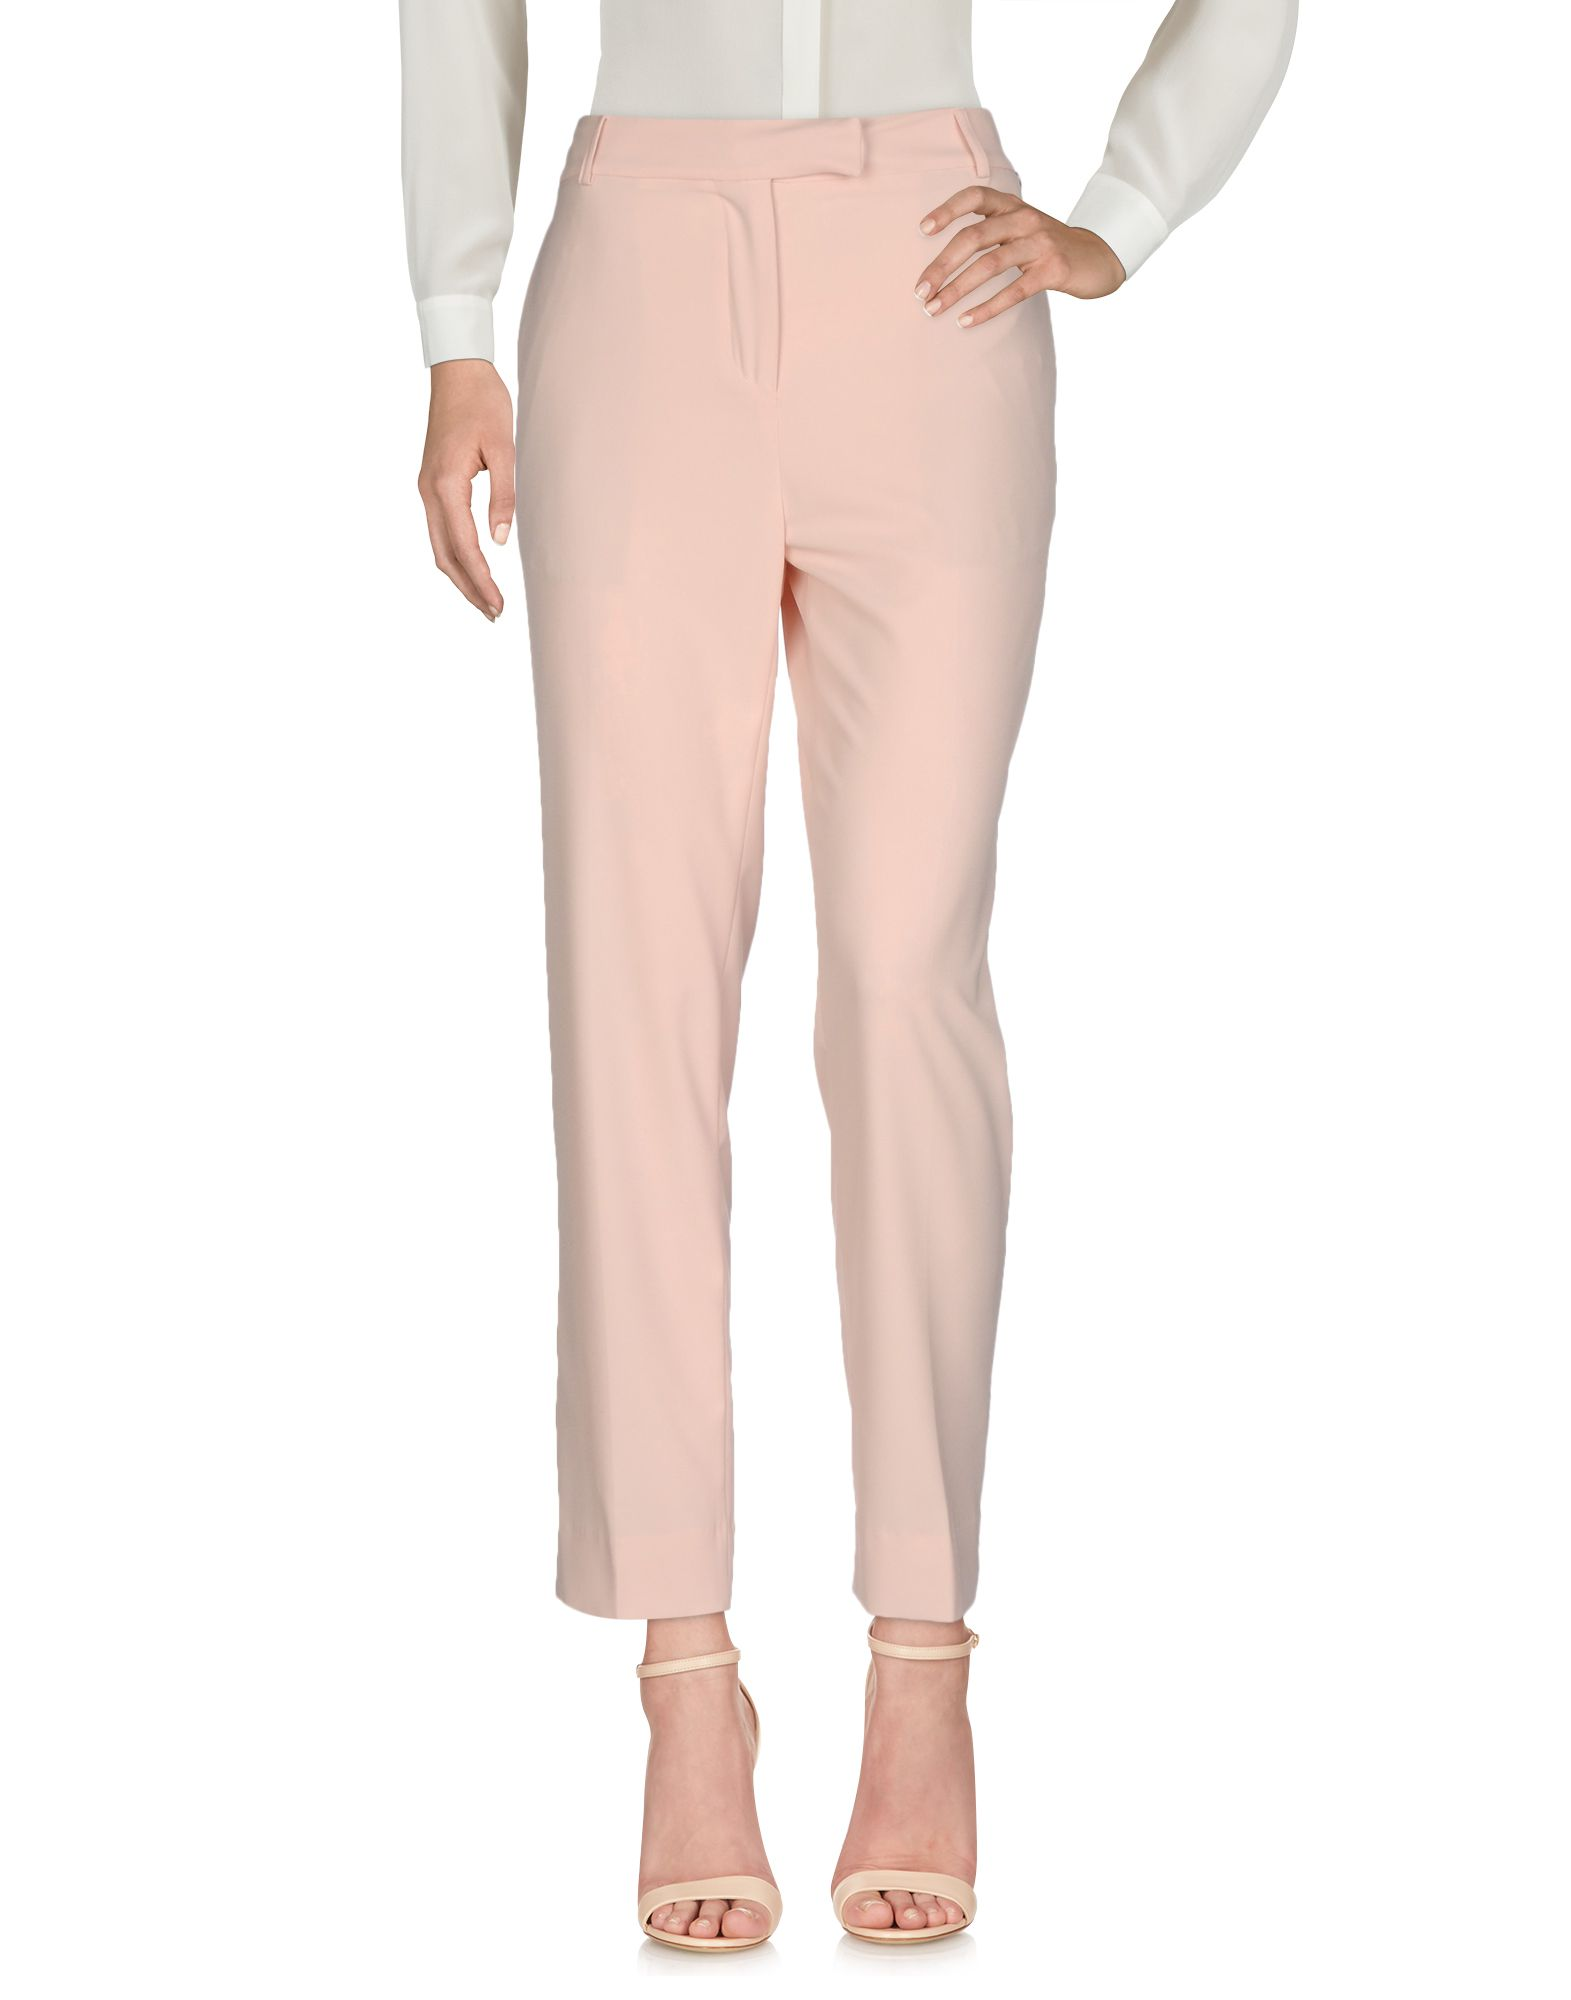 ALESSANDRO DELL'ACQUA Casual Pants in Light Pink